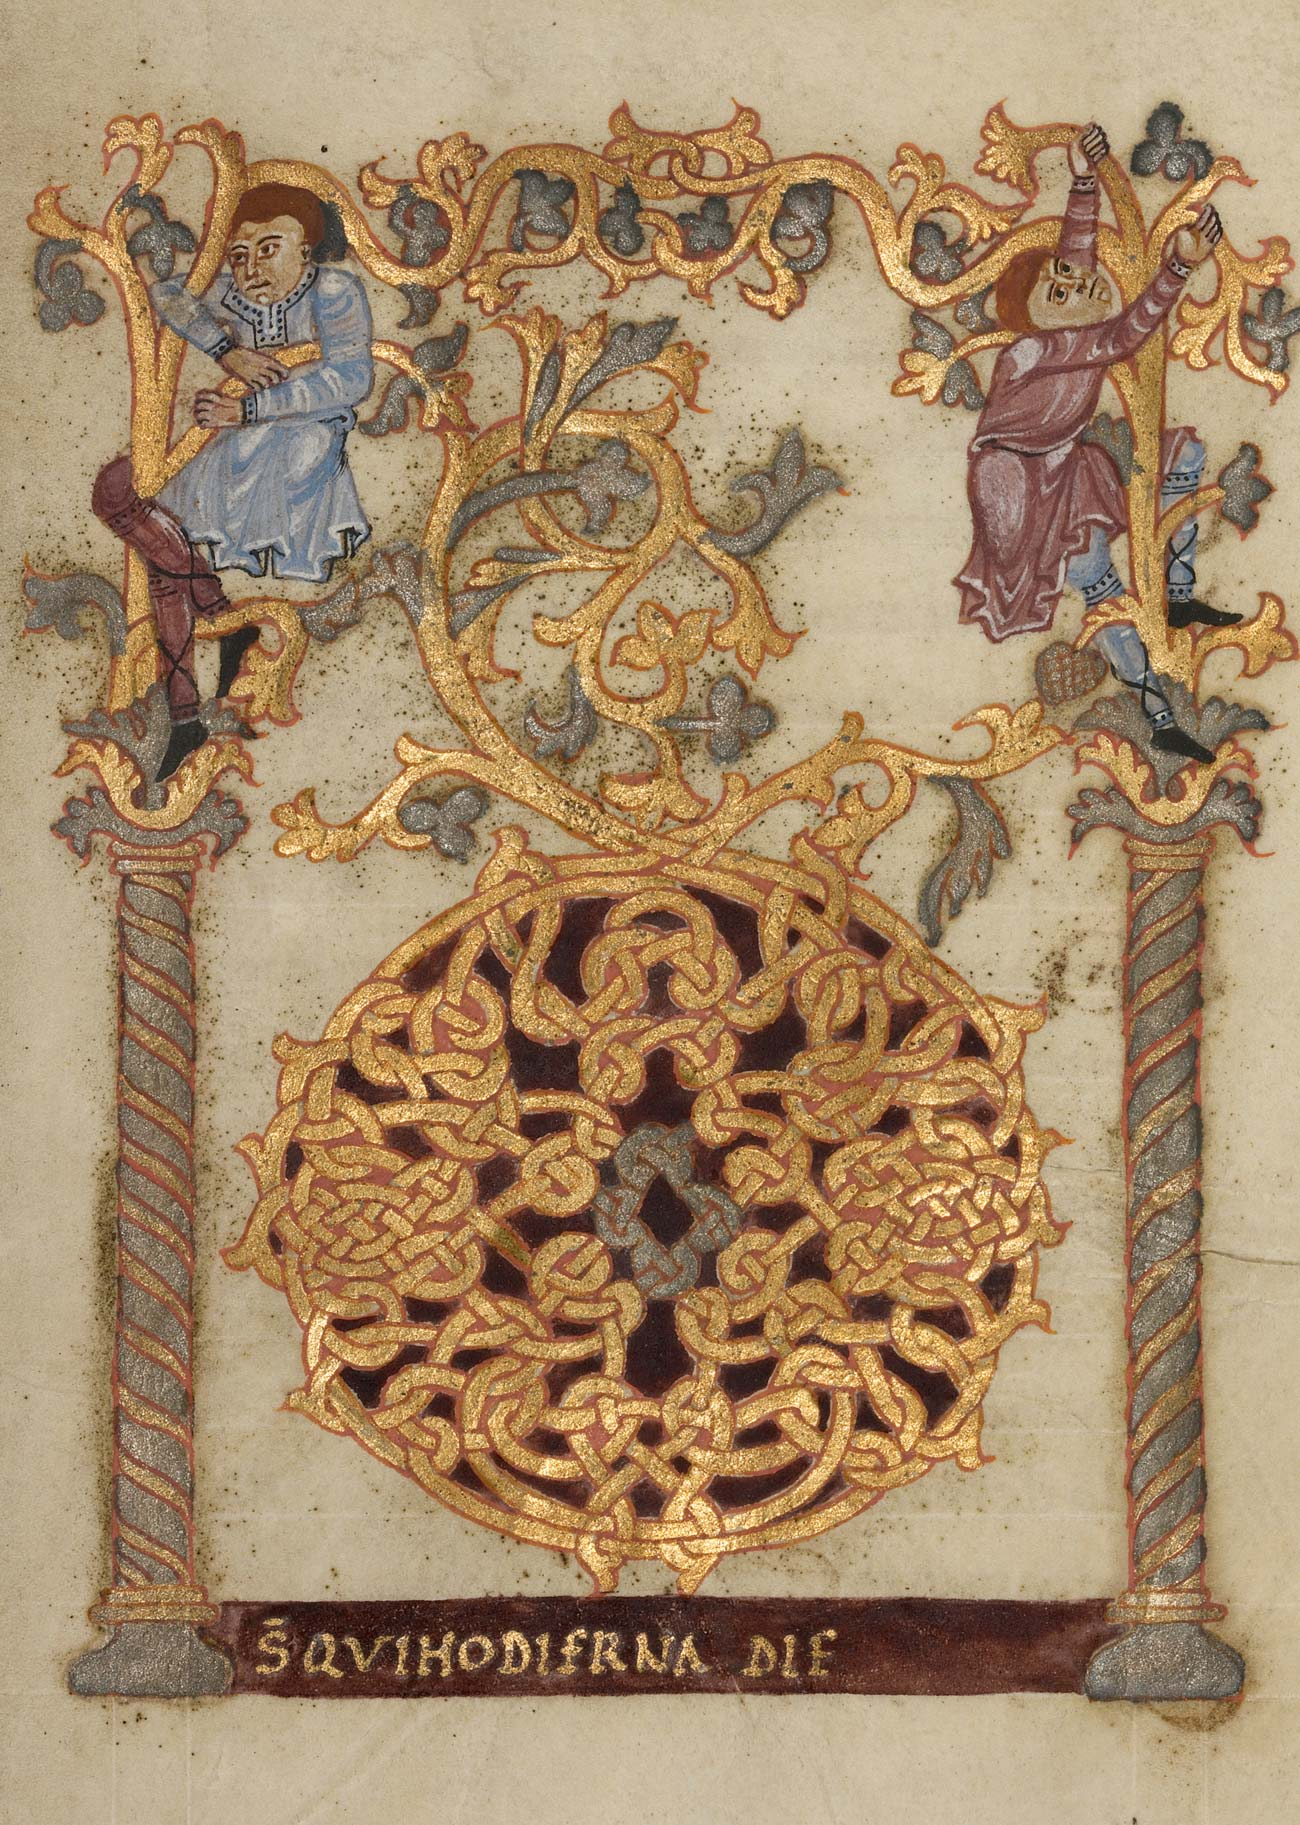 Manuscript page with intricate gold leaf vines, and two people clinging to them in the upper corners